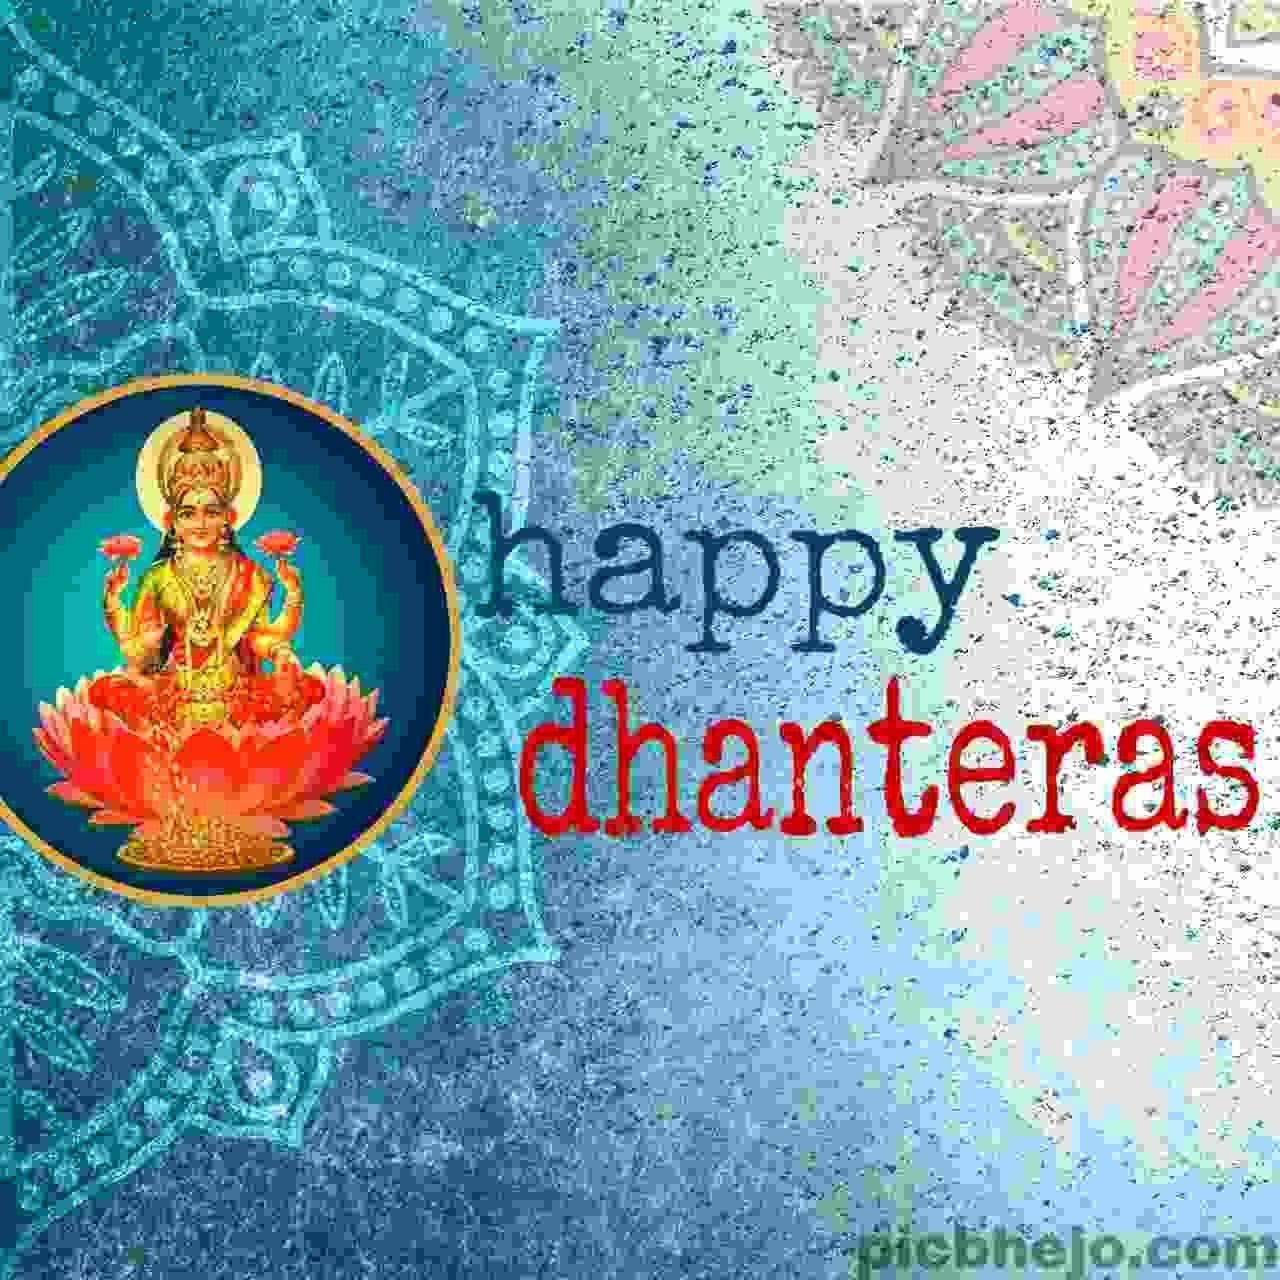 Happy Dhanteras 2019 Wishing Images Collection Free Download HD #happydhanteras Happy Dhanteras 2019 Wishing Images Collection Free Download HD #dhanteraswishes Happy Dhanteras 2019 Wishing Images Collection Free Download HD #happydhanteras Happy Dhanteras 2019 Wishing Images Collection Free Download HD #happydhanteras Happy Dhanteras 2019 Wishing Images Collection Free Download HD #happydhanteras Happy Dhanteras 2019 Wishing Images Collection Free Download HD #dhanteraswishes Happy Dhanteras 20 #happydhanteras